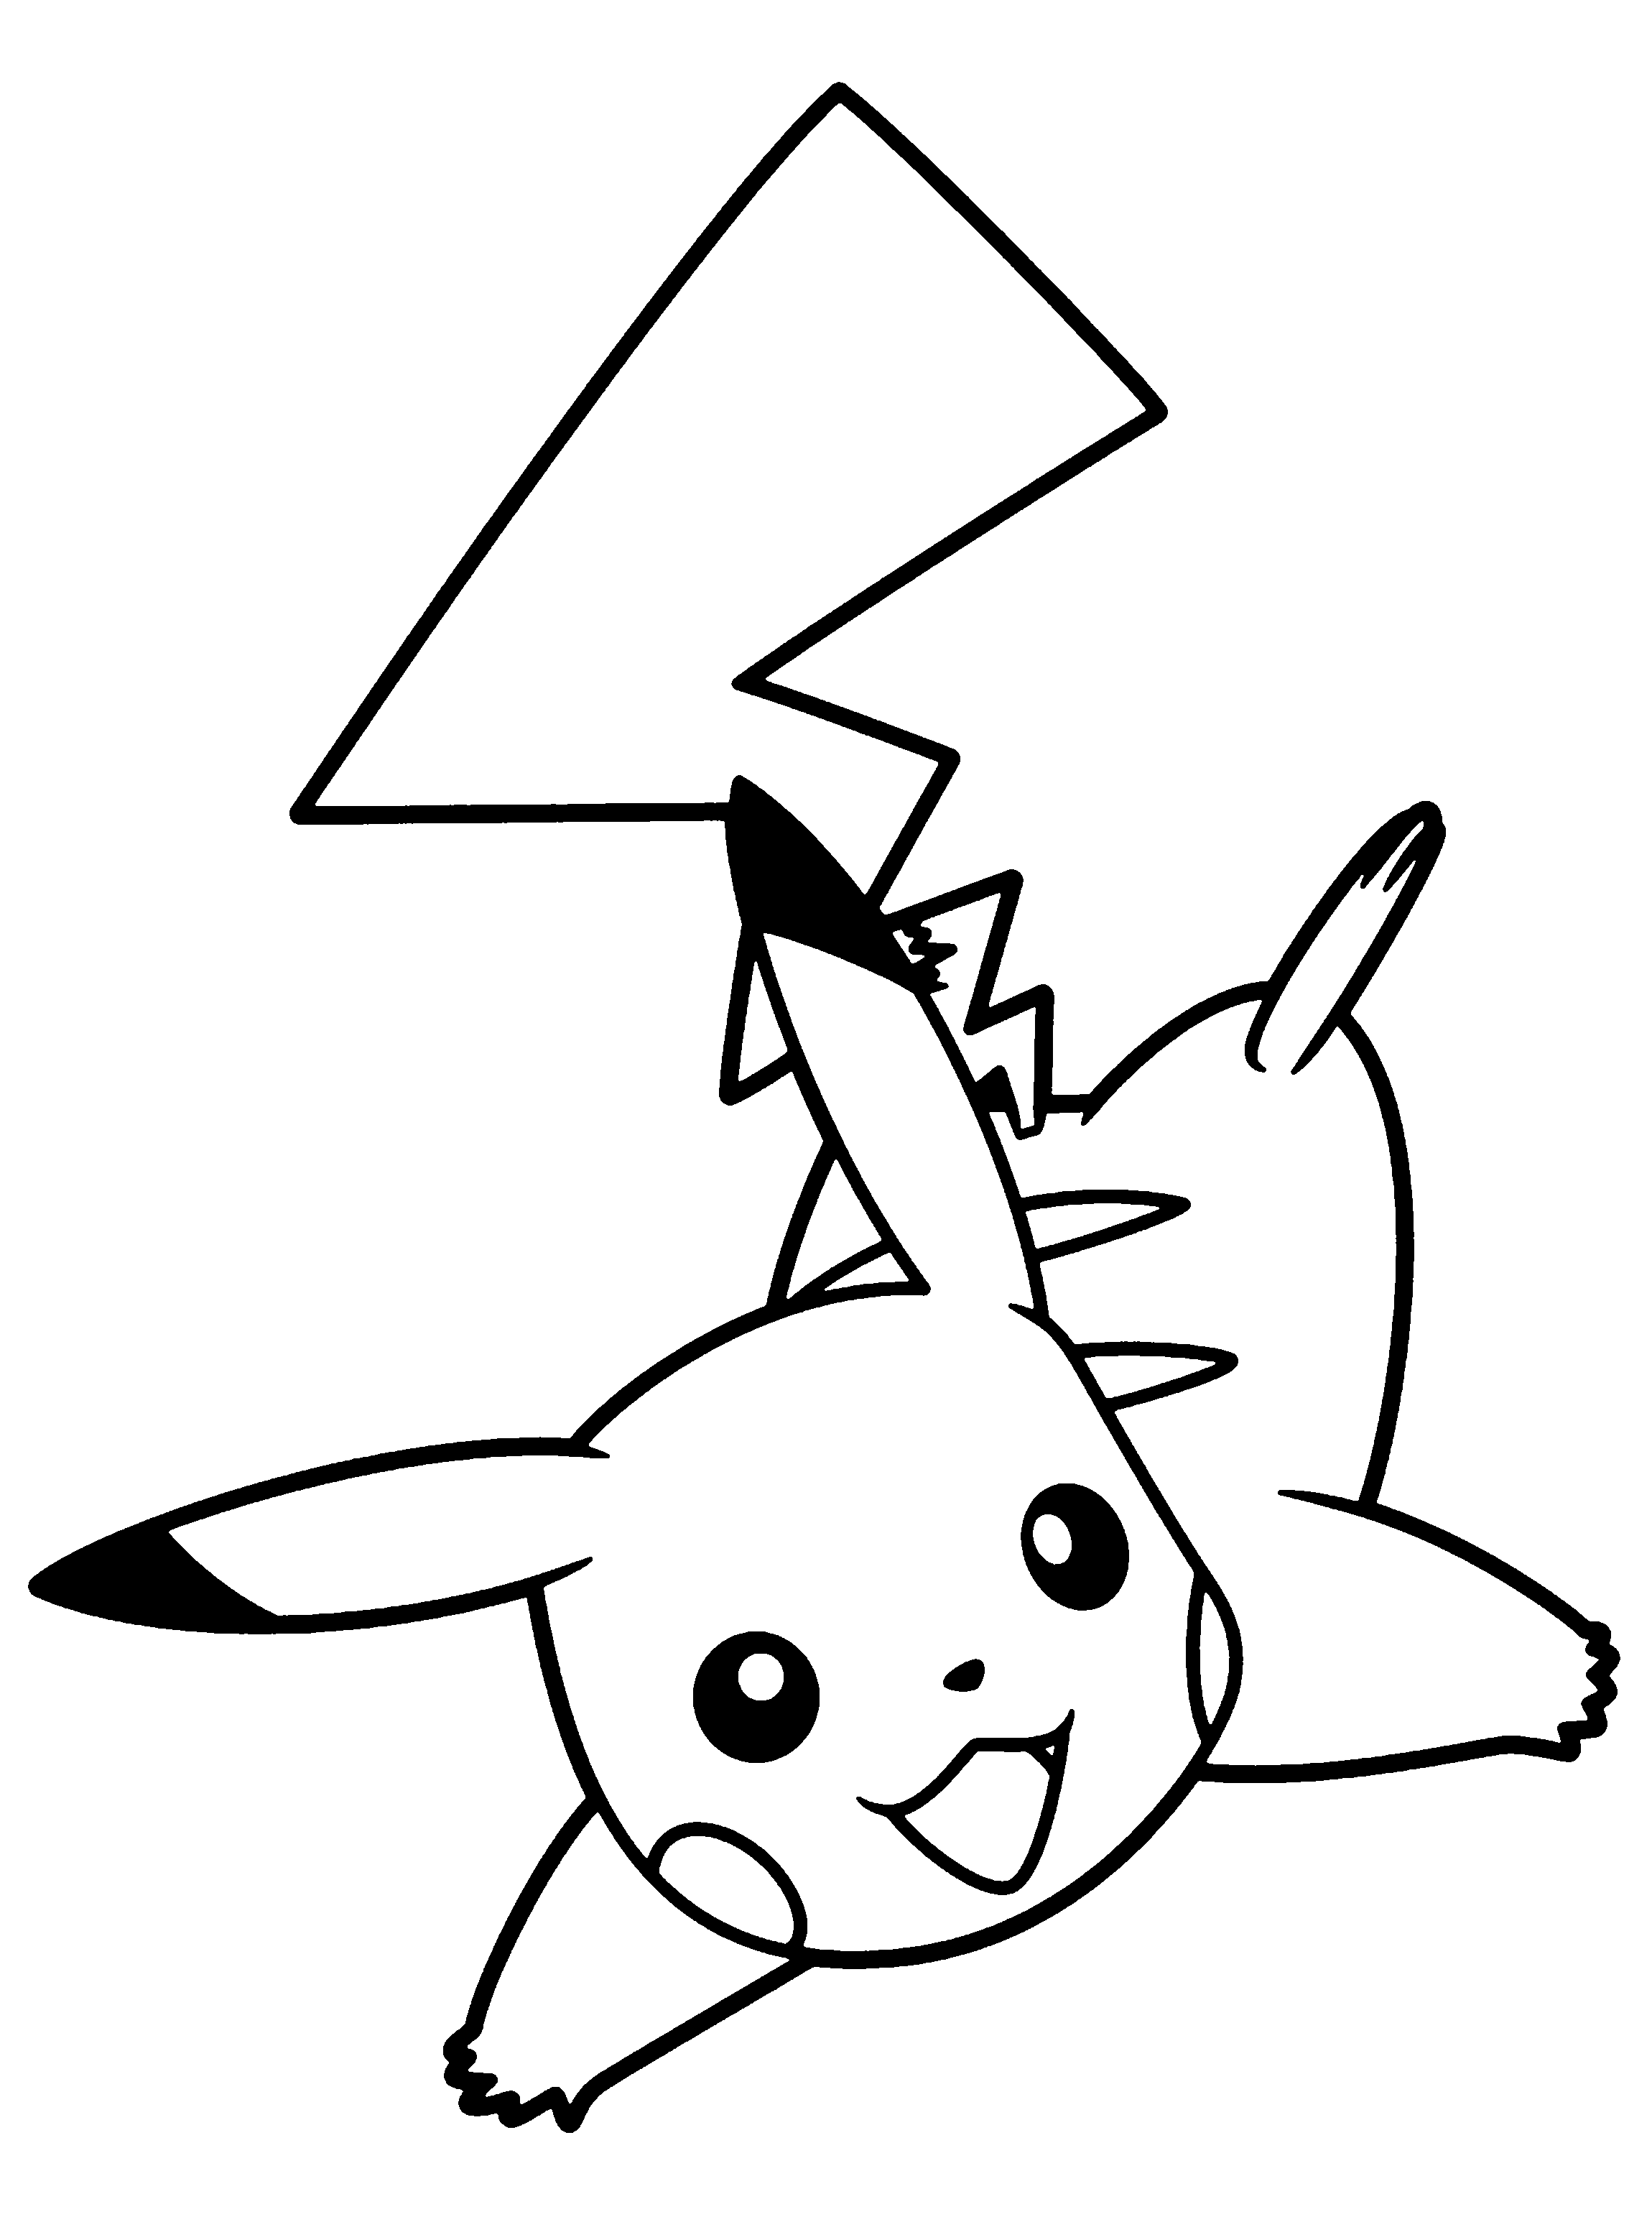 Similiar Black And White Pikachu Keywords.